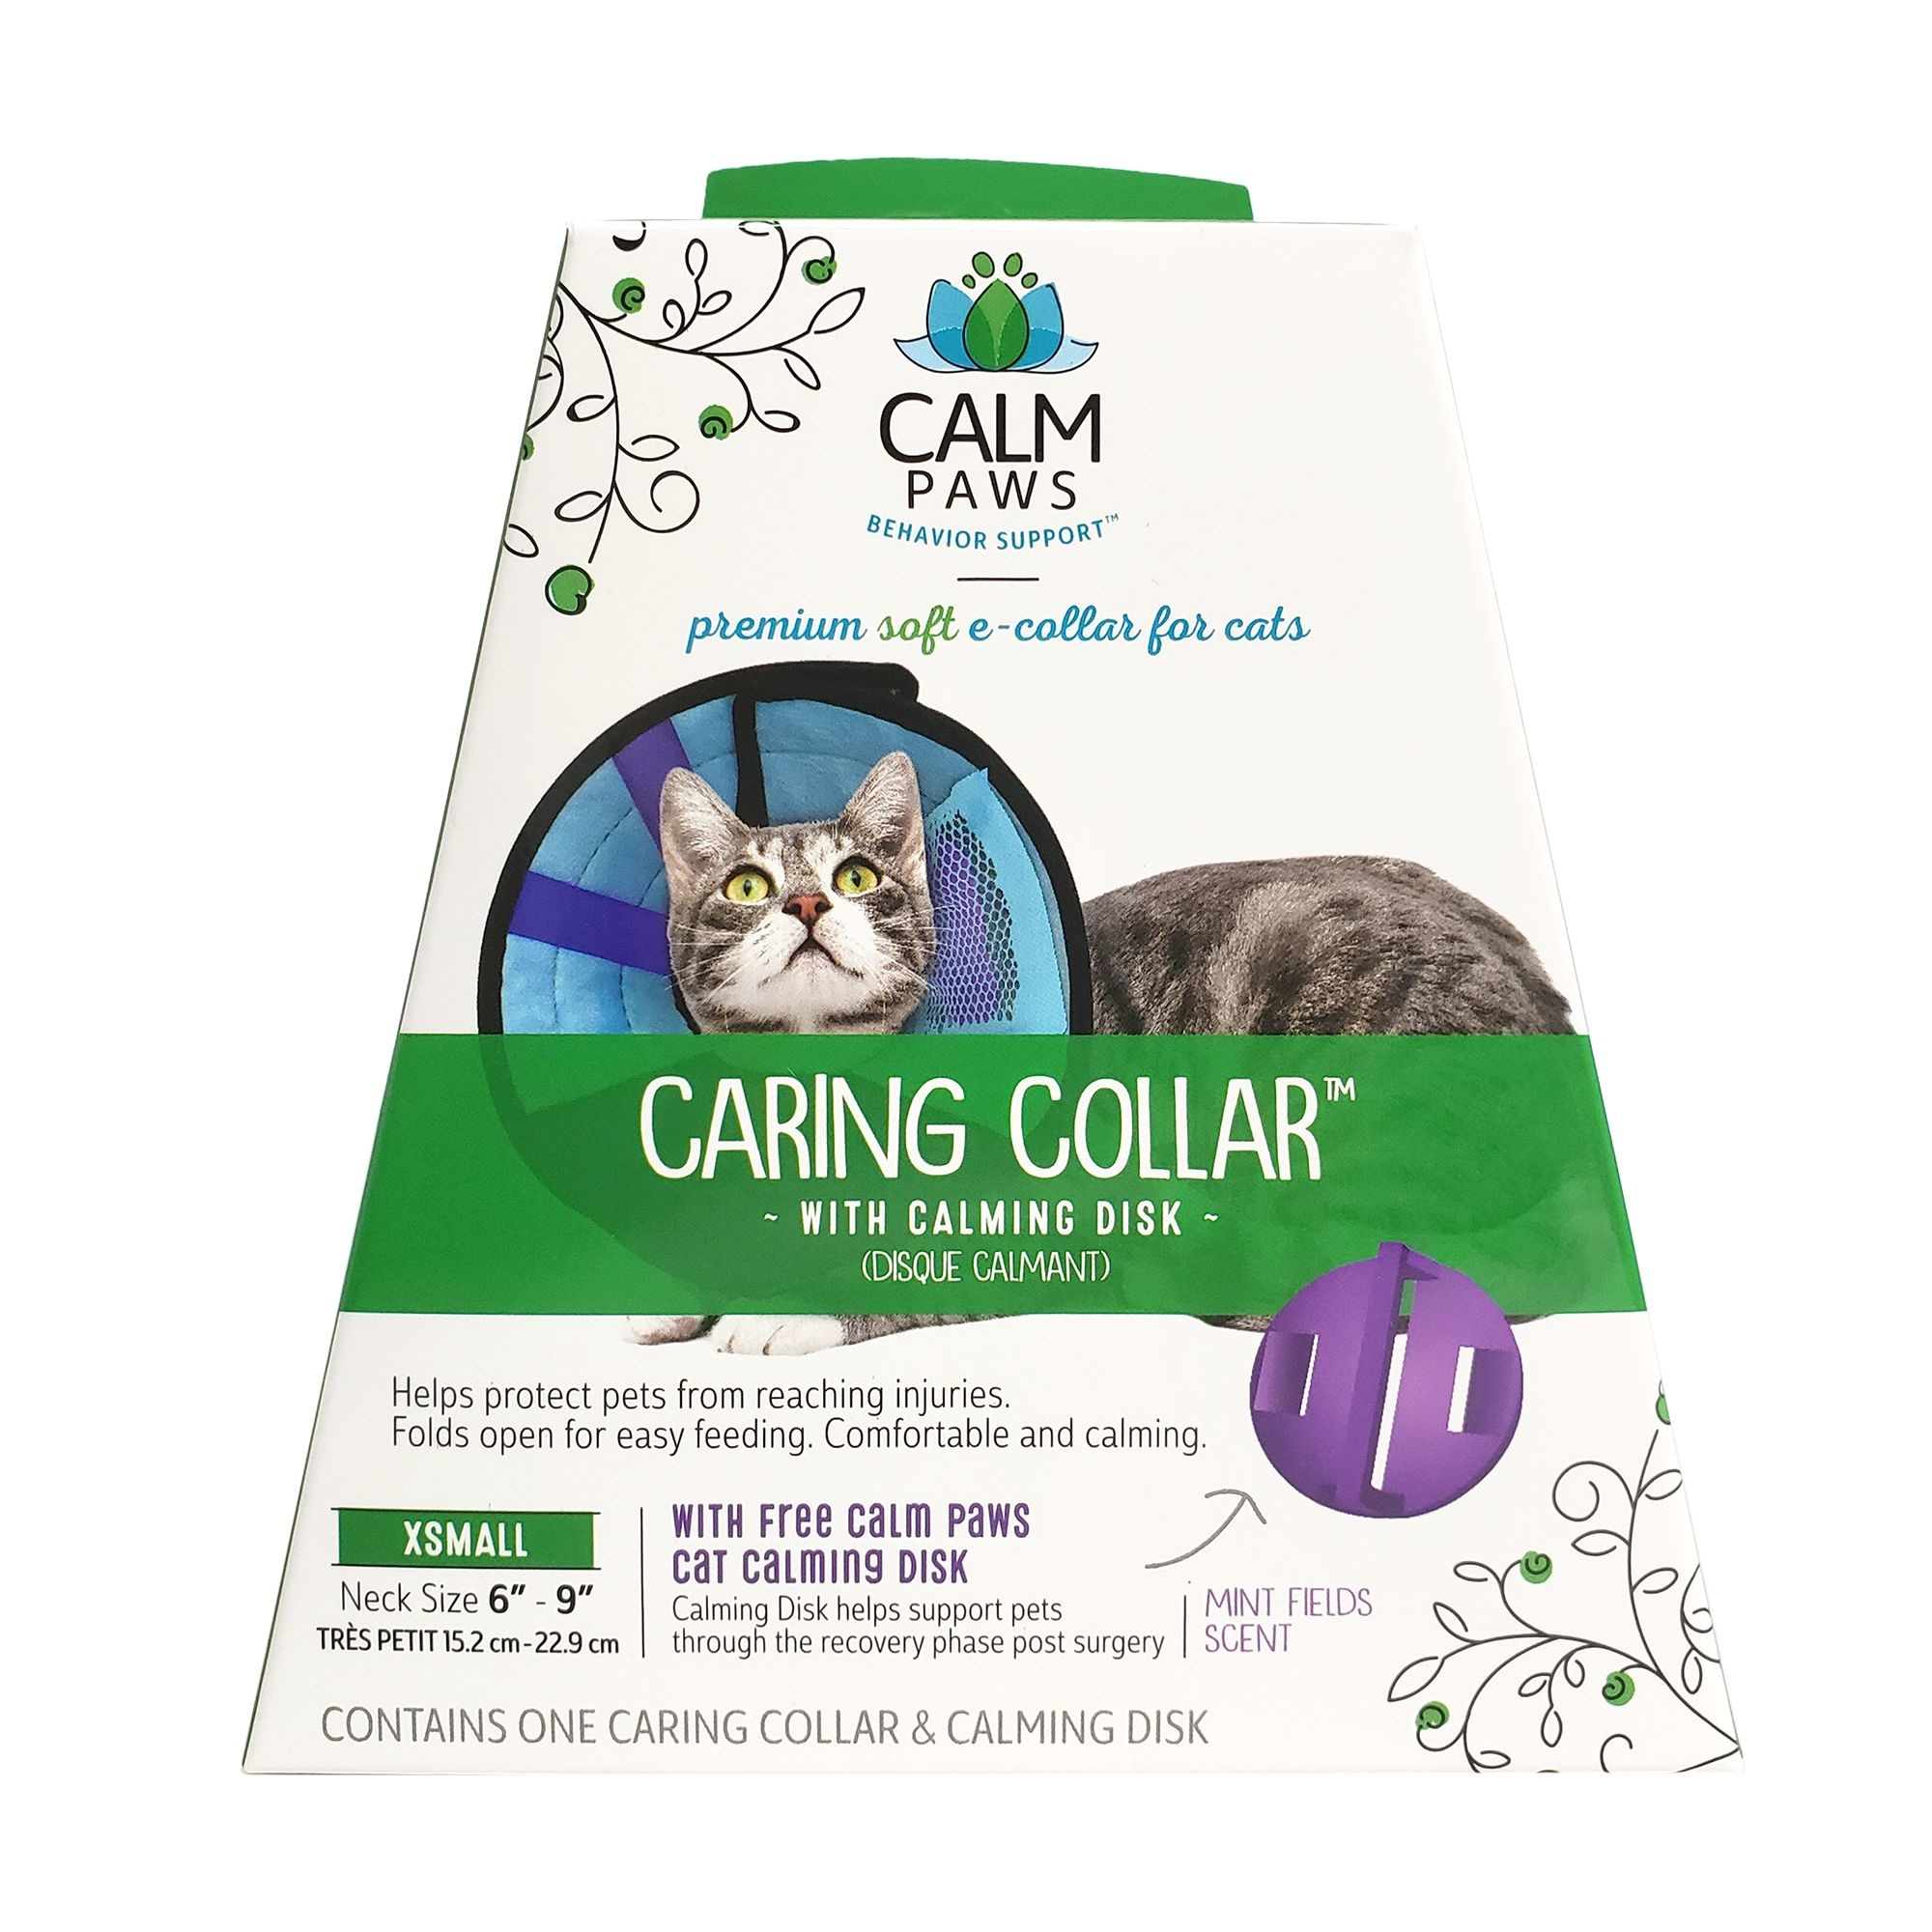 21st Centry Animal Health Care Calm Paws Caring Collar with Calming Gel Patch Cat